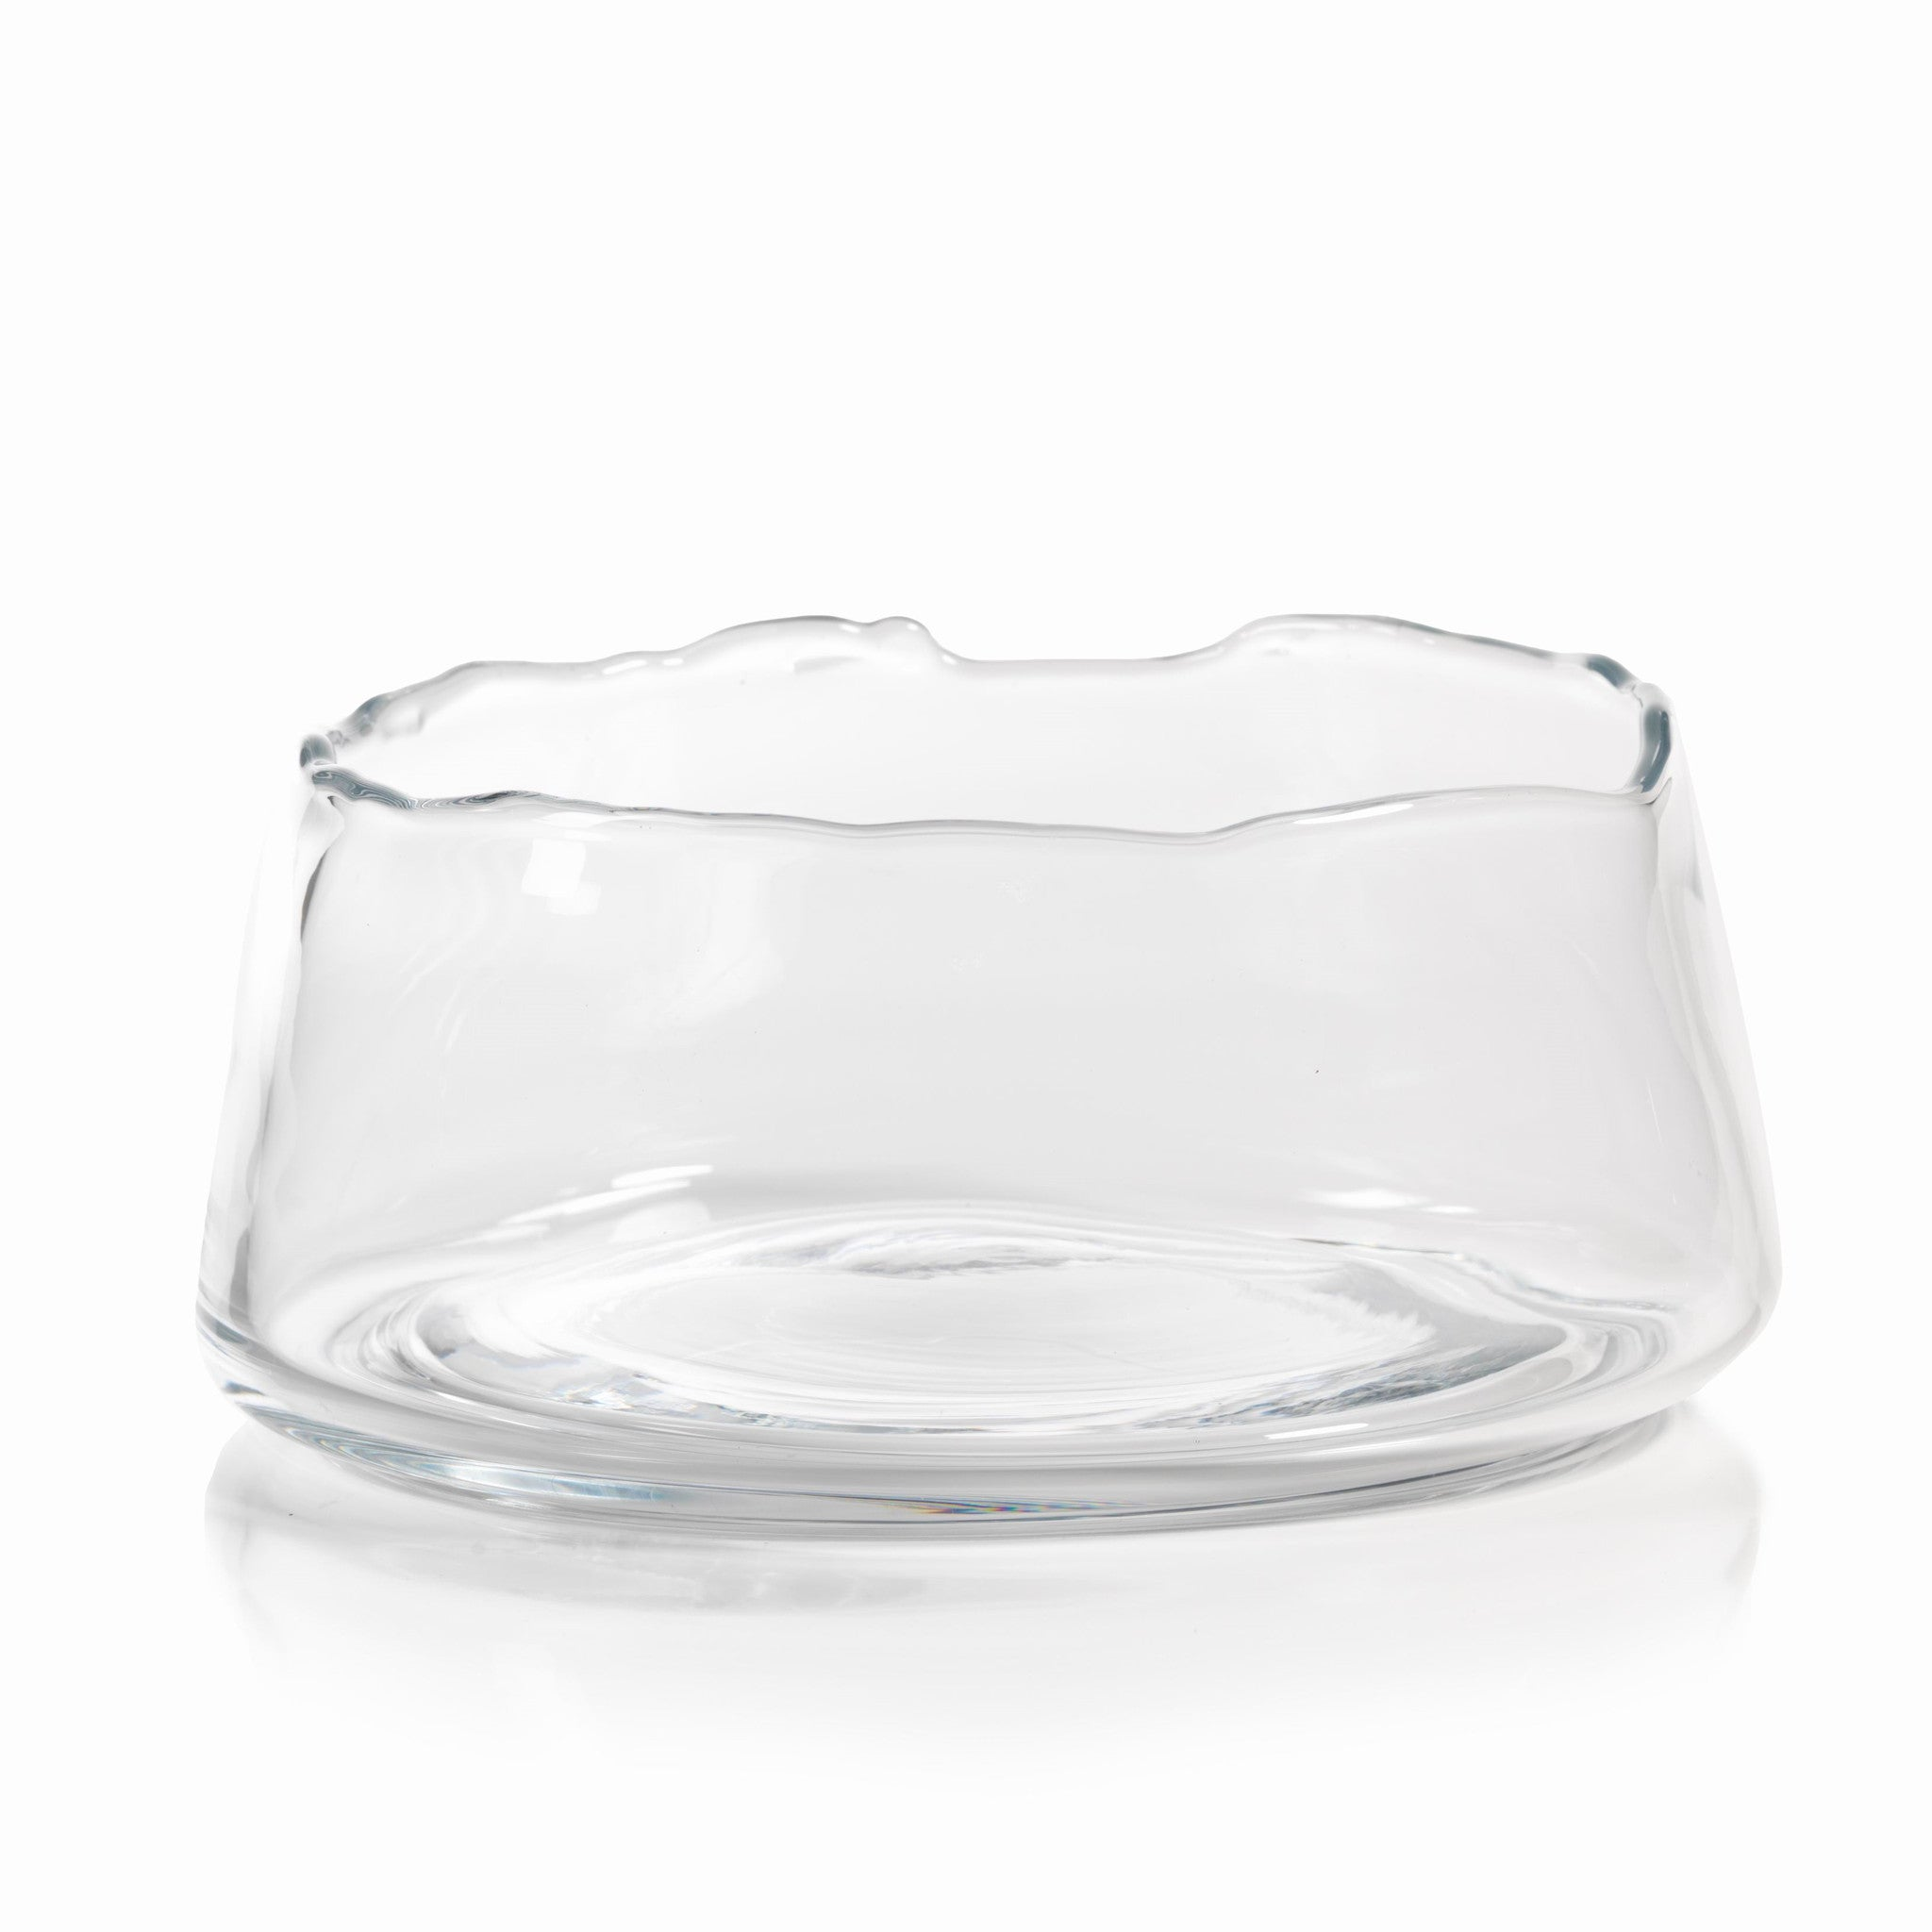 Manarola Glass Bowl - Clear - CARLYLE AVENUE